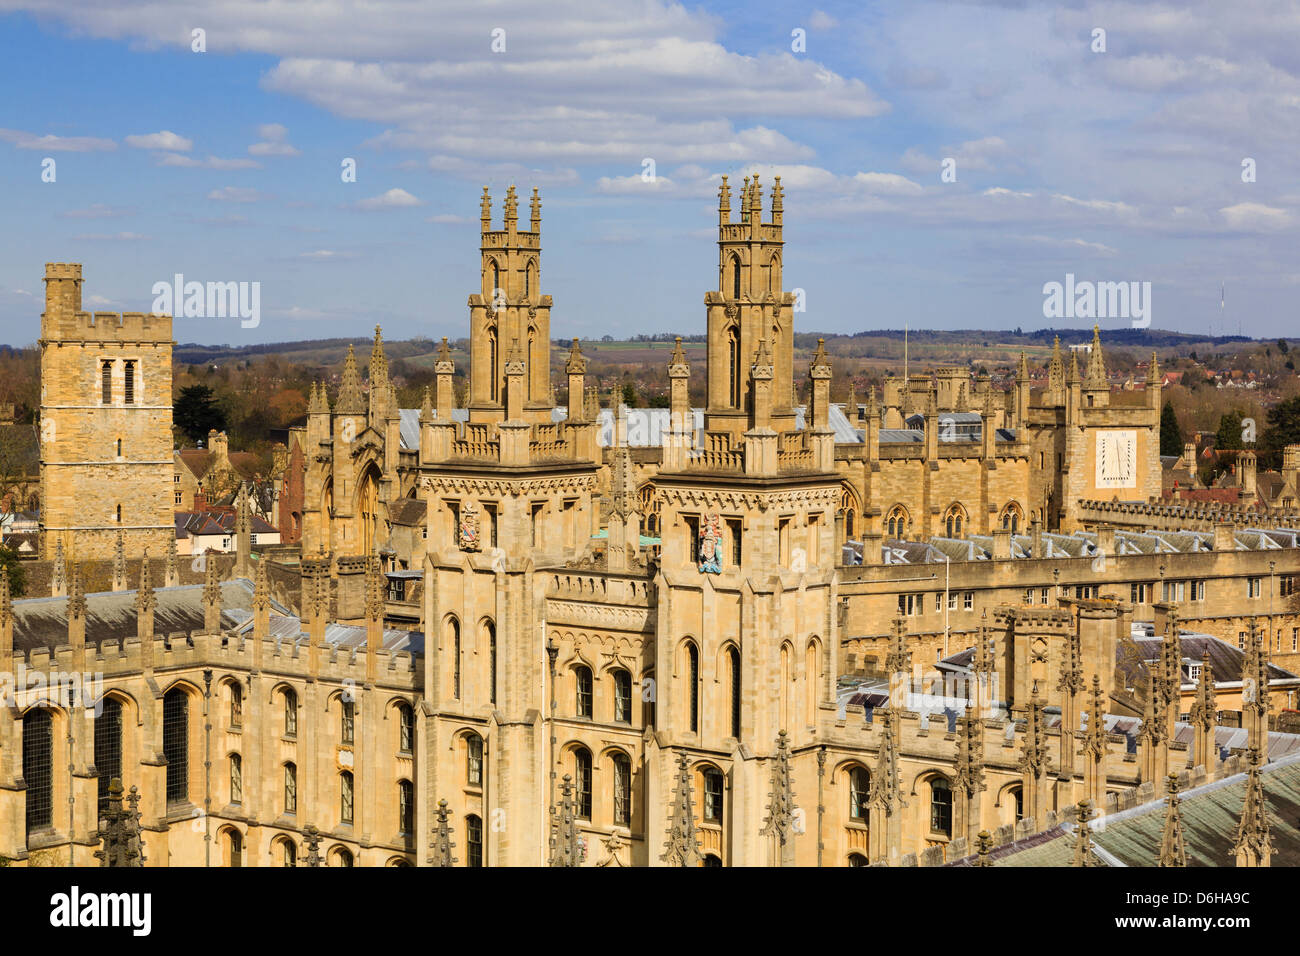 Oxford, Oxfordshire, England, UK. High view of Hawksmoor towers of All Souls College, the all fellows university - Stock Image